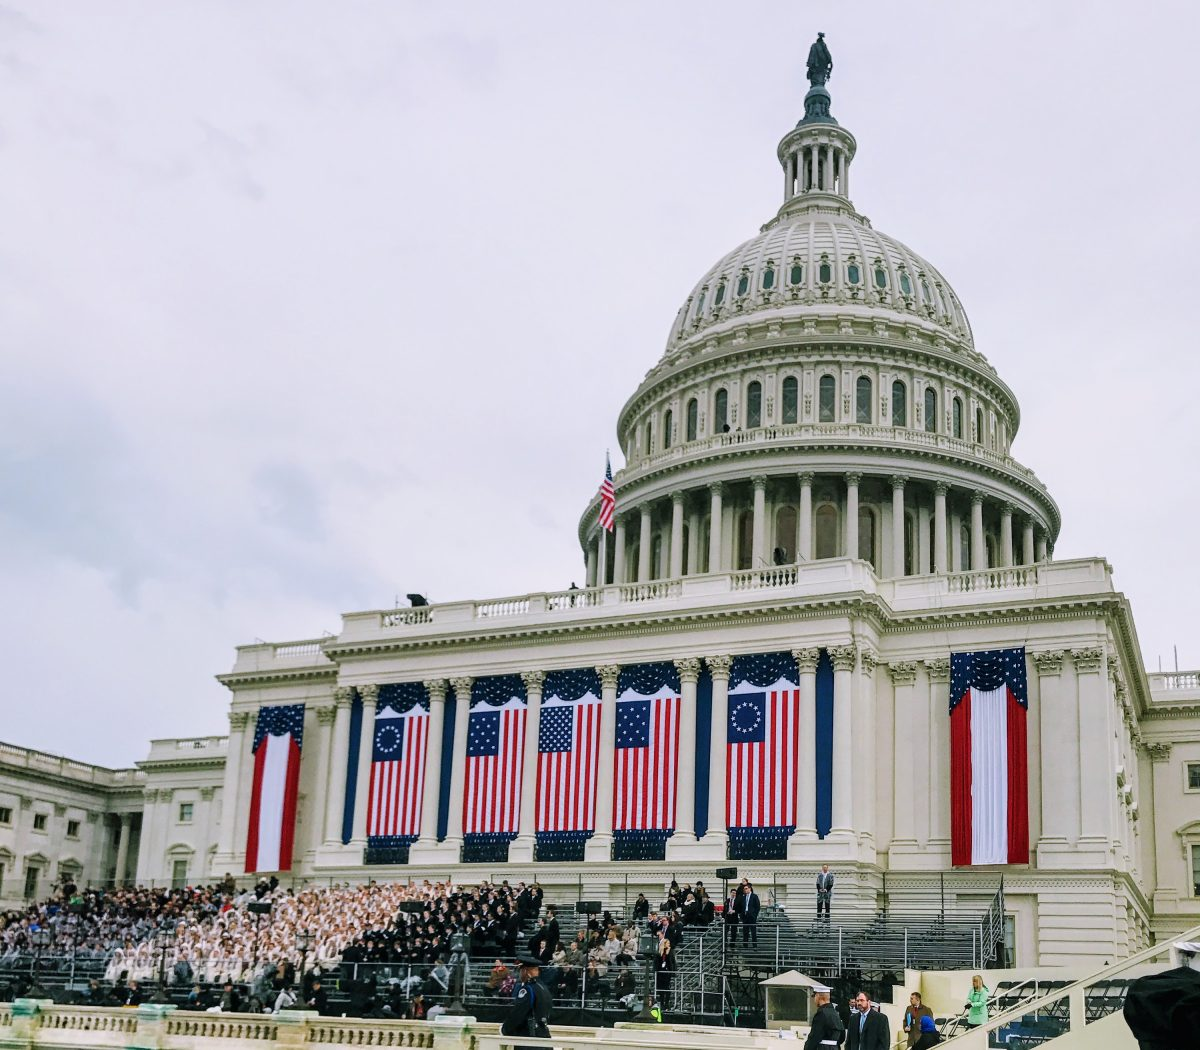 The Capitol is decorated for the inauguration ceremonies for the 45th president of the United States. /Photo by Shevry Lassiter